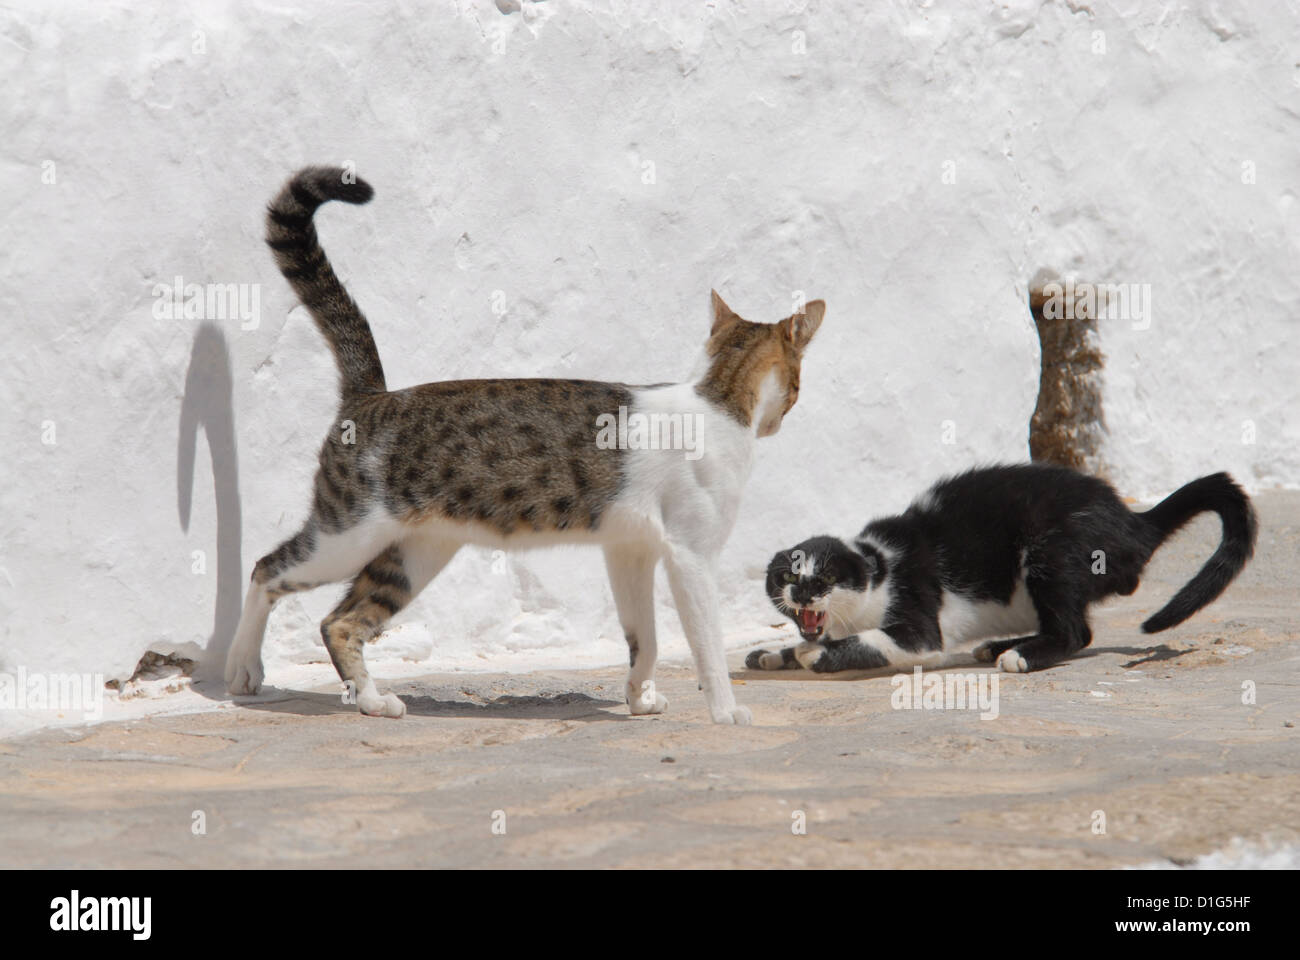 two cats have a fight and hiss, Greece, Dodecanese Island, Non-pedigree Shorthair, felis silvestris forma catus, - Stock Image